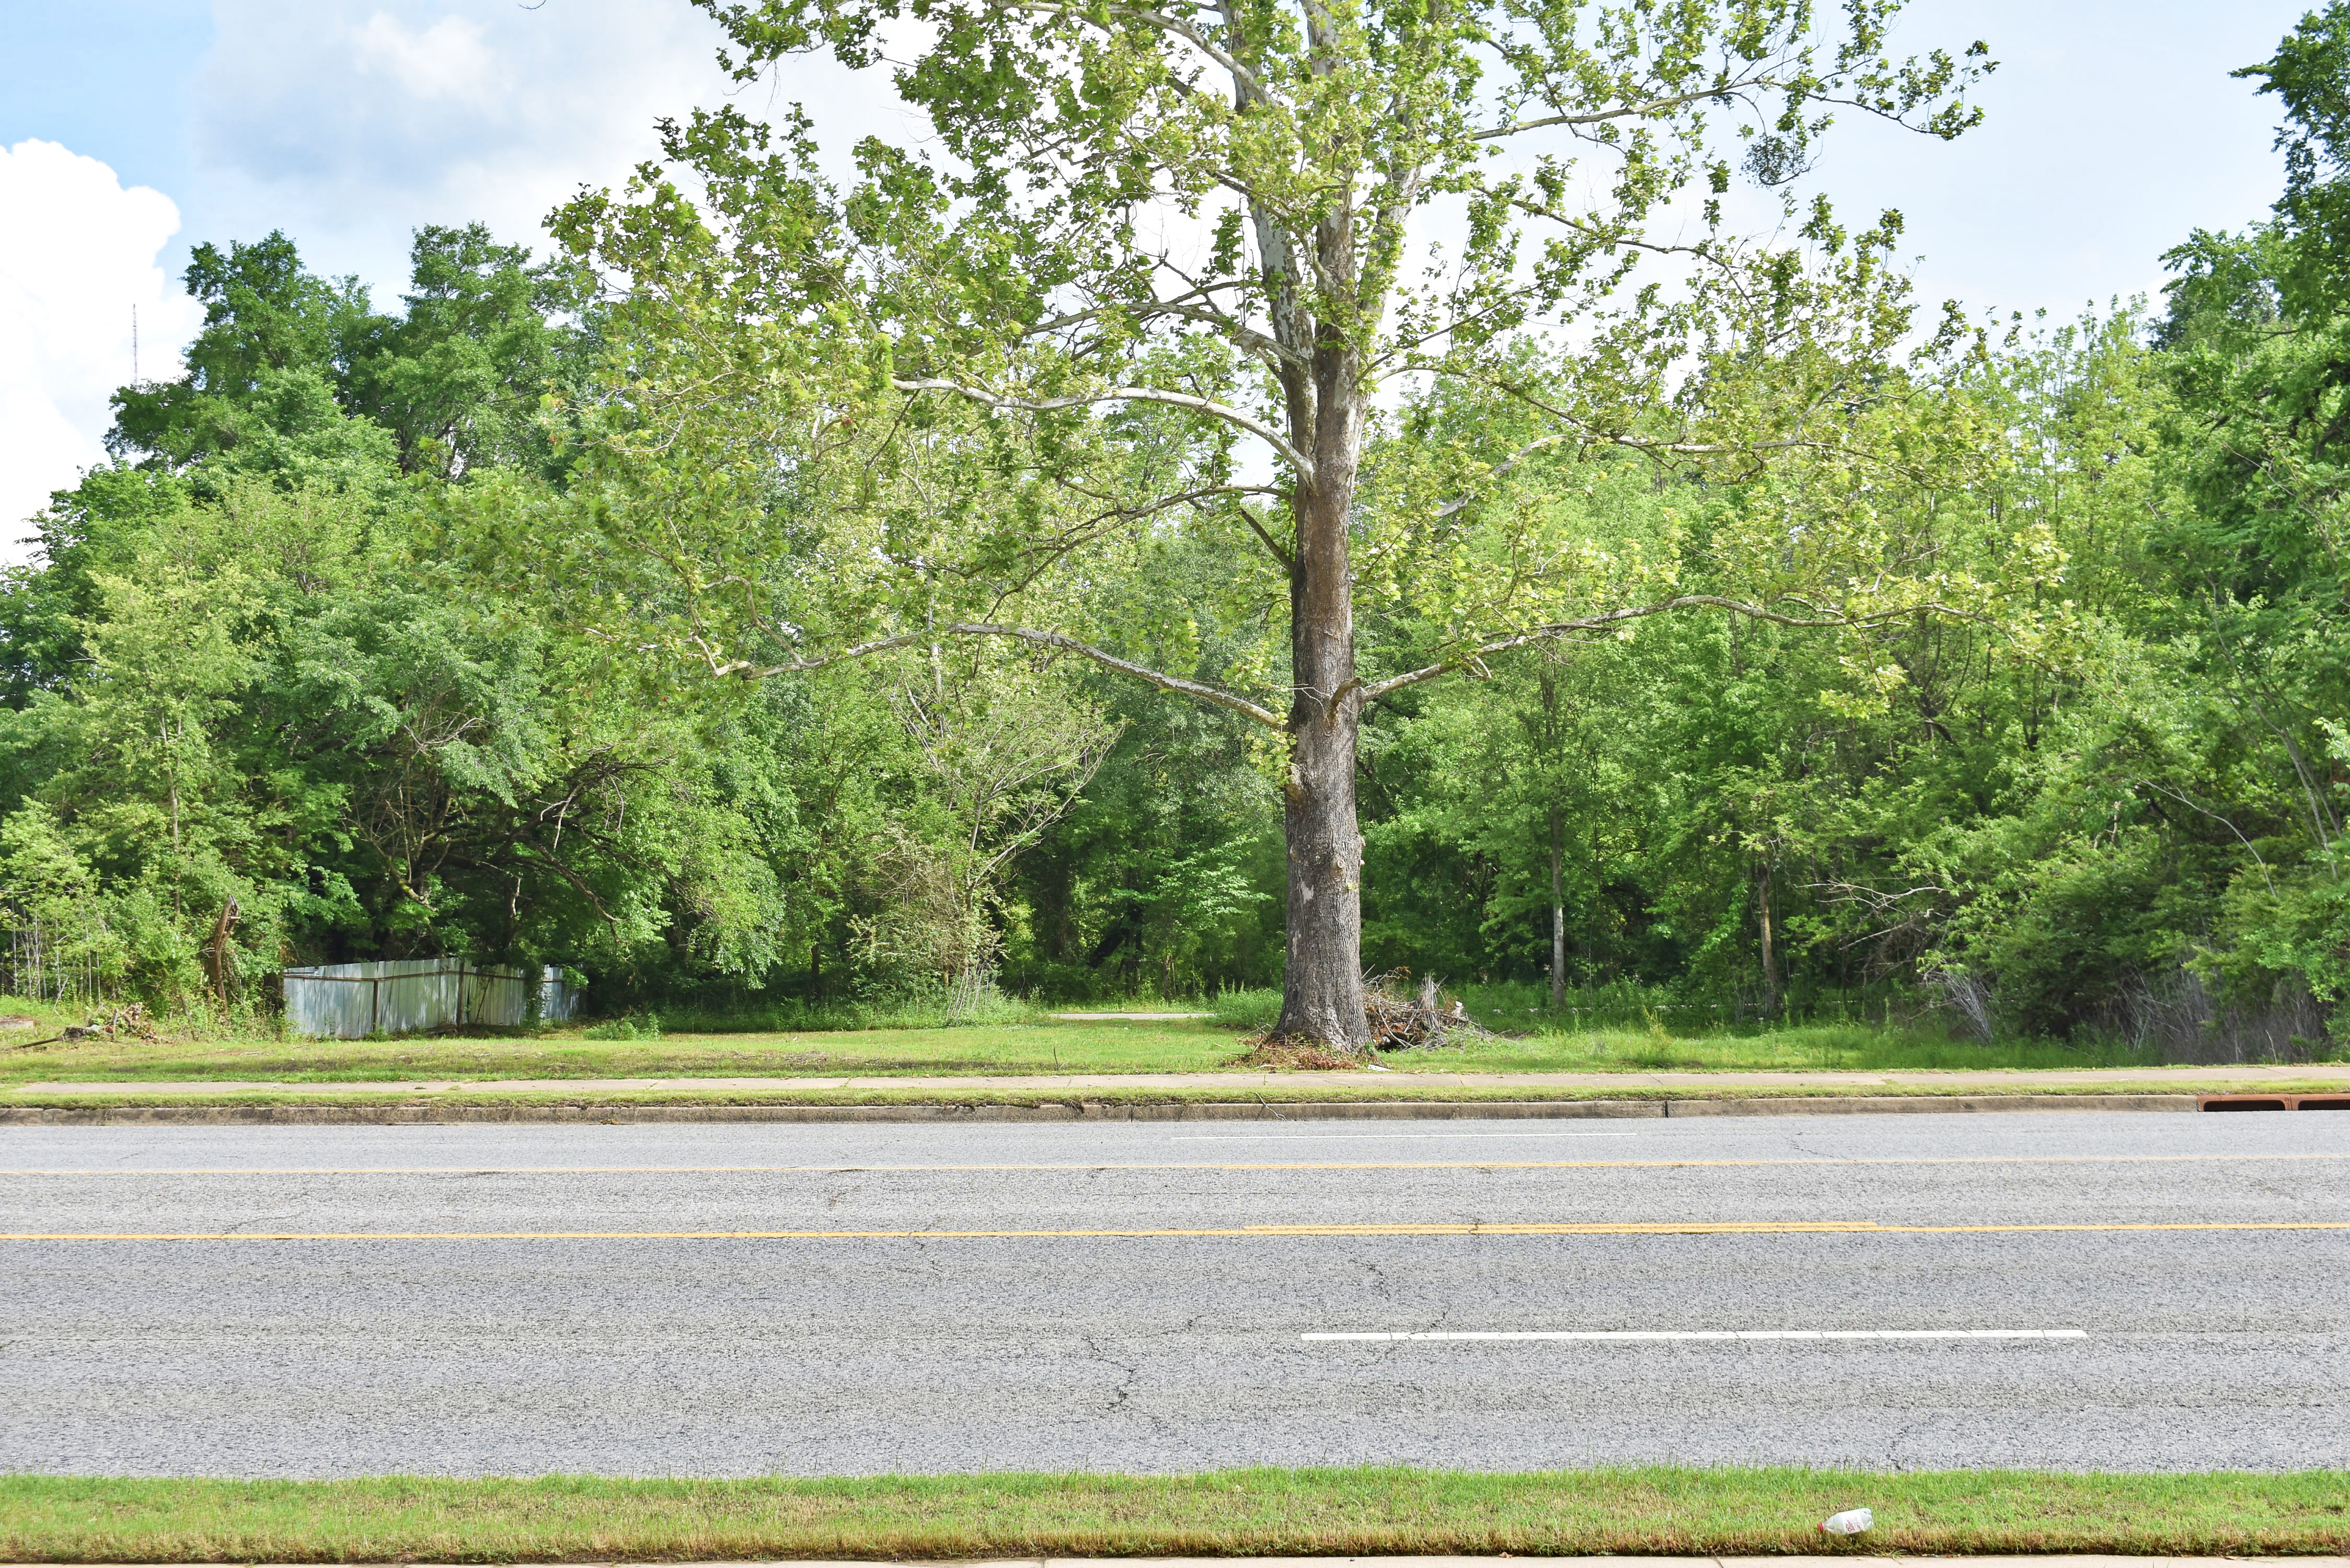 423 W MAIN, ANTLERS – $99,500